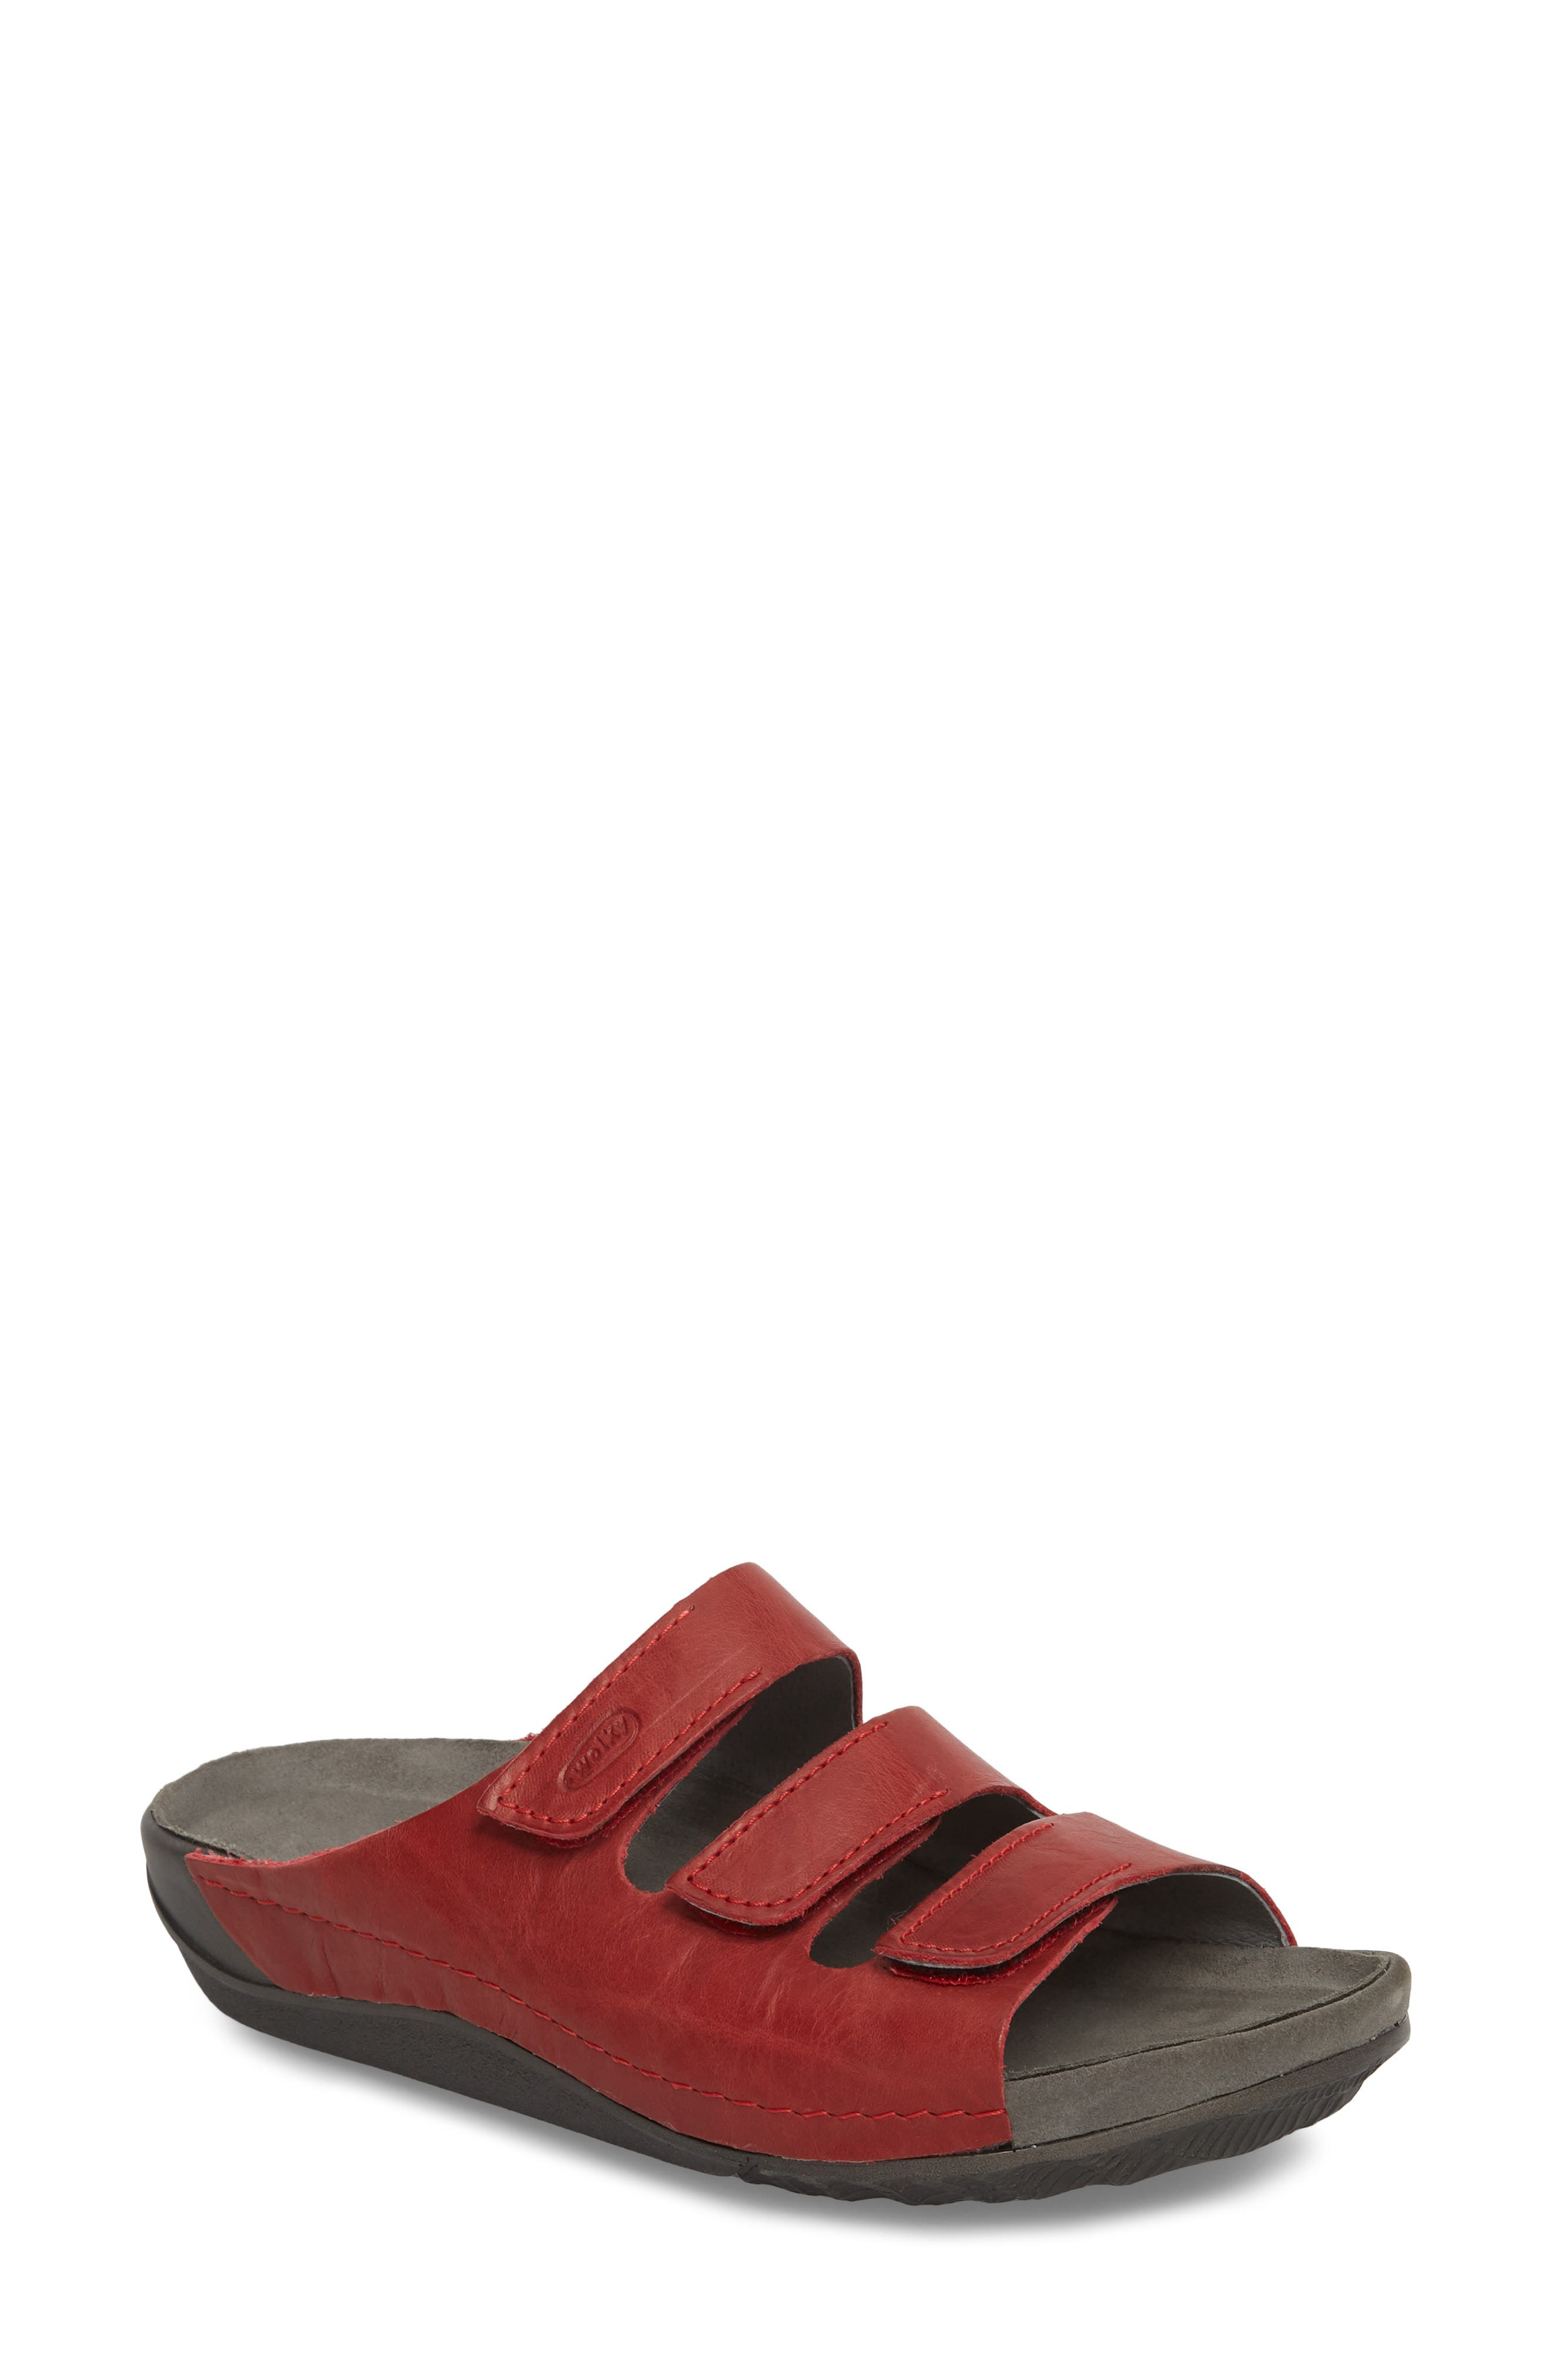 Nomad Slide Sandal,                             Main thumbnail 1, color,                             Red Leather